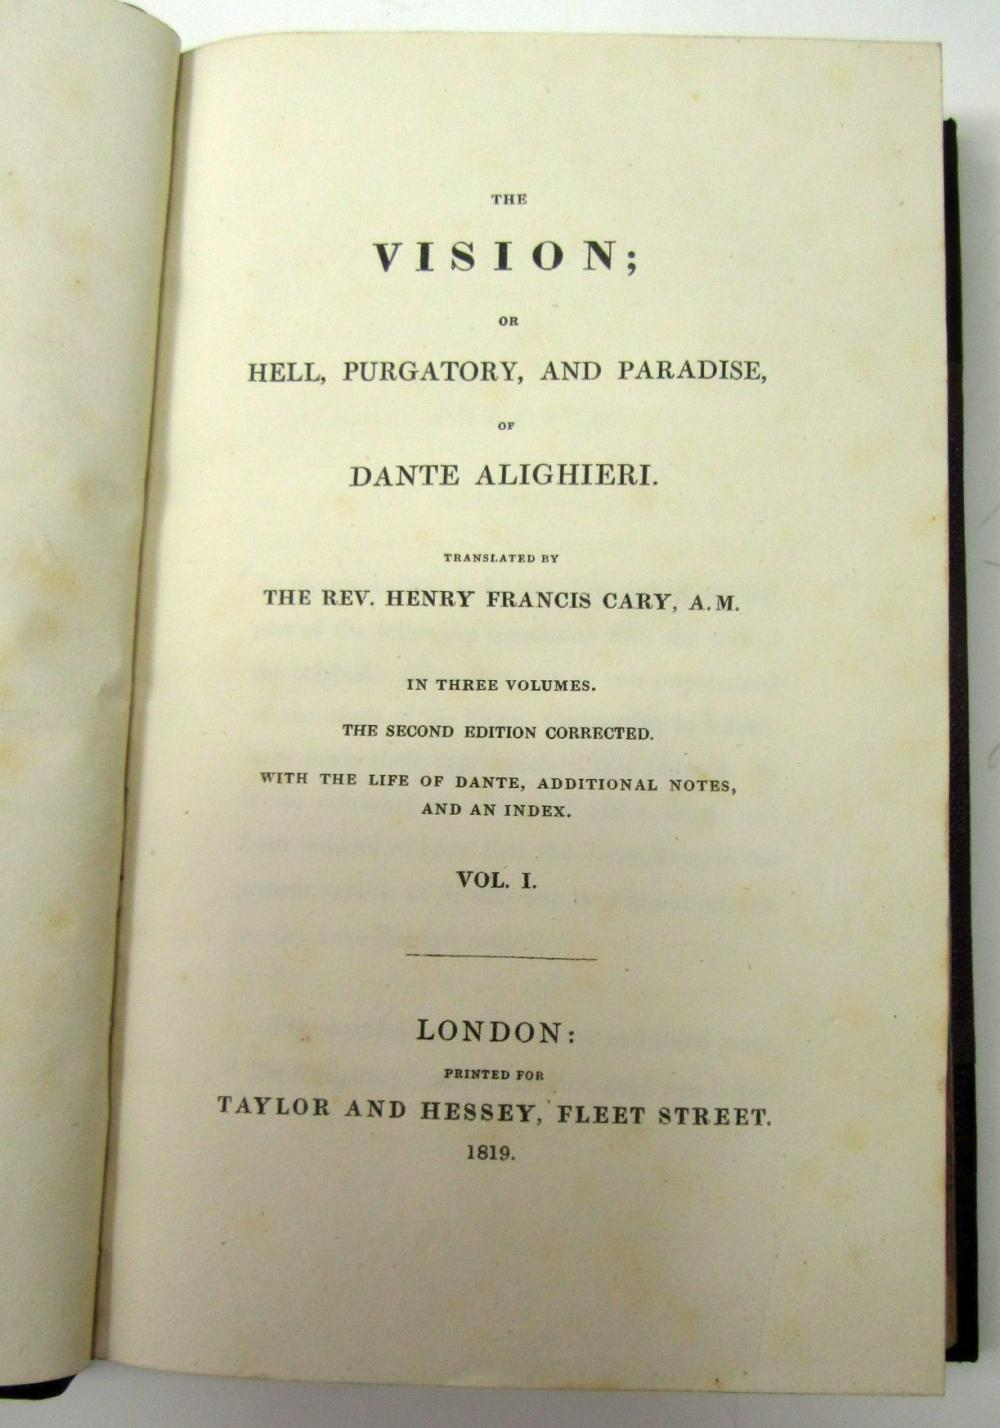 ALIGHIERI, DANTE, TRANSLATED BY CARY, HENRY FRANCIS THE VISION; OR HELL, PURGATORY, AND PARADISE